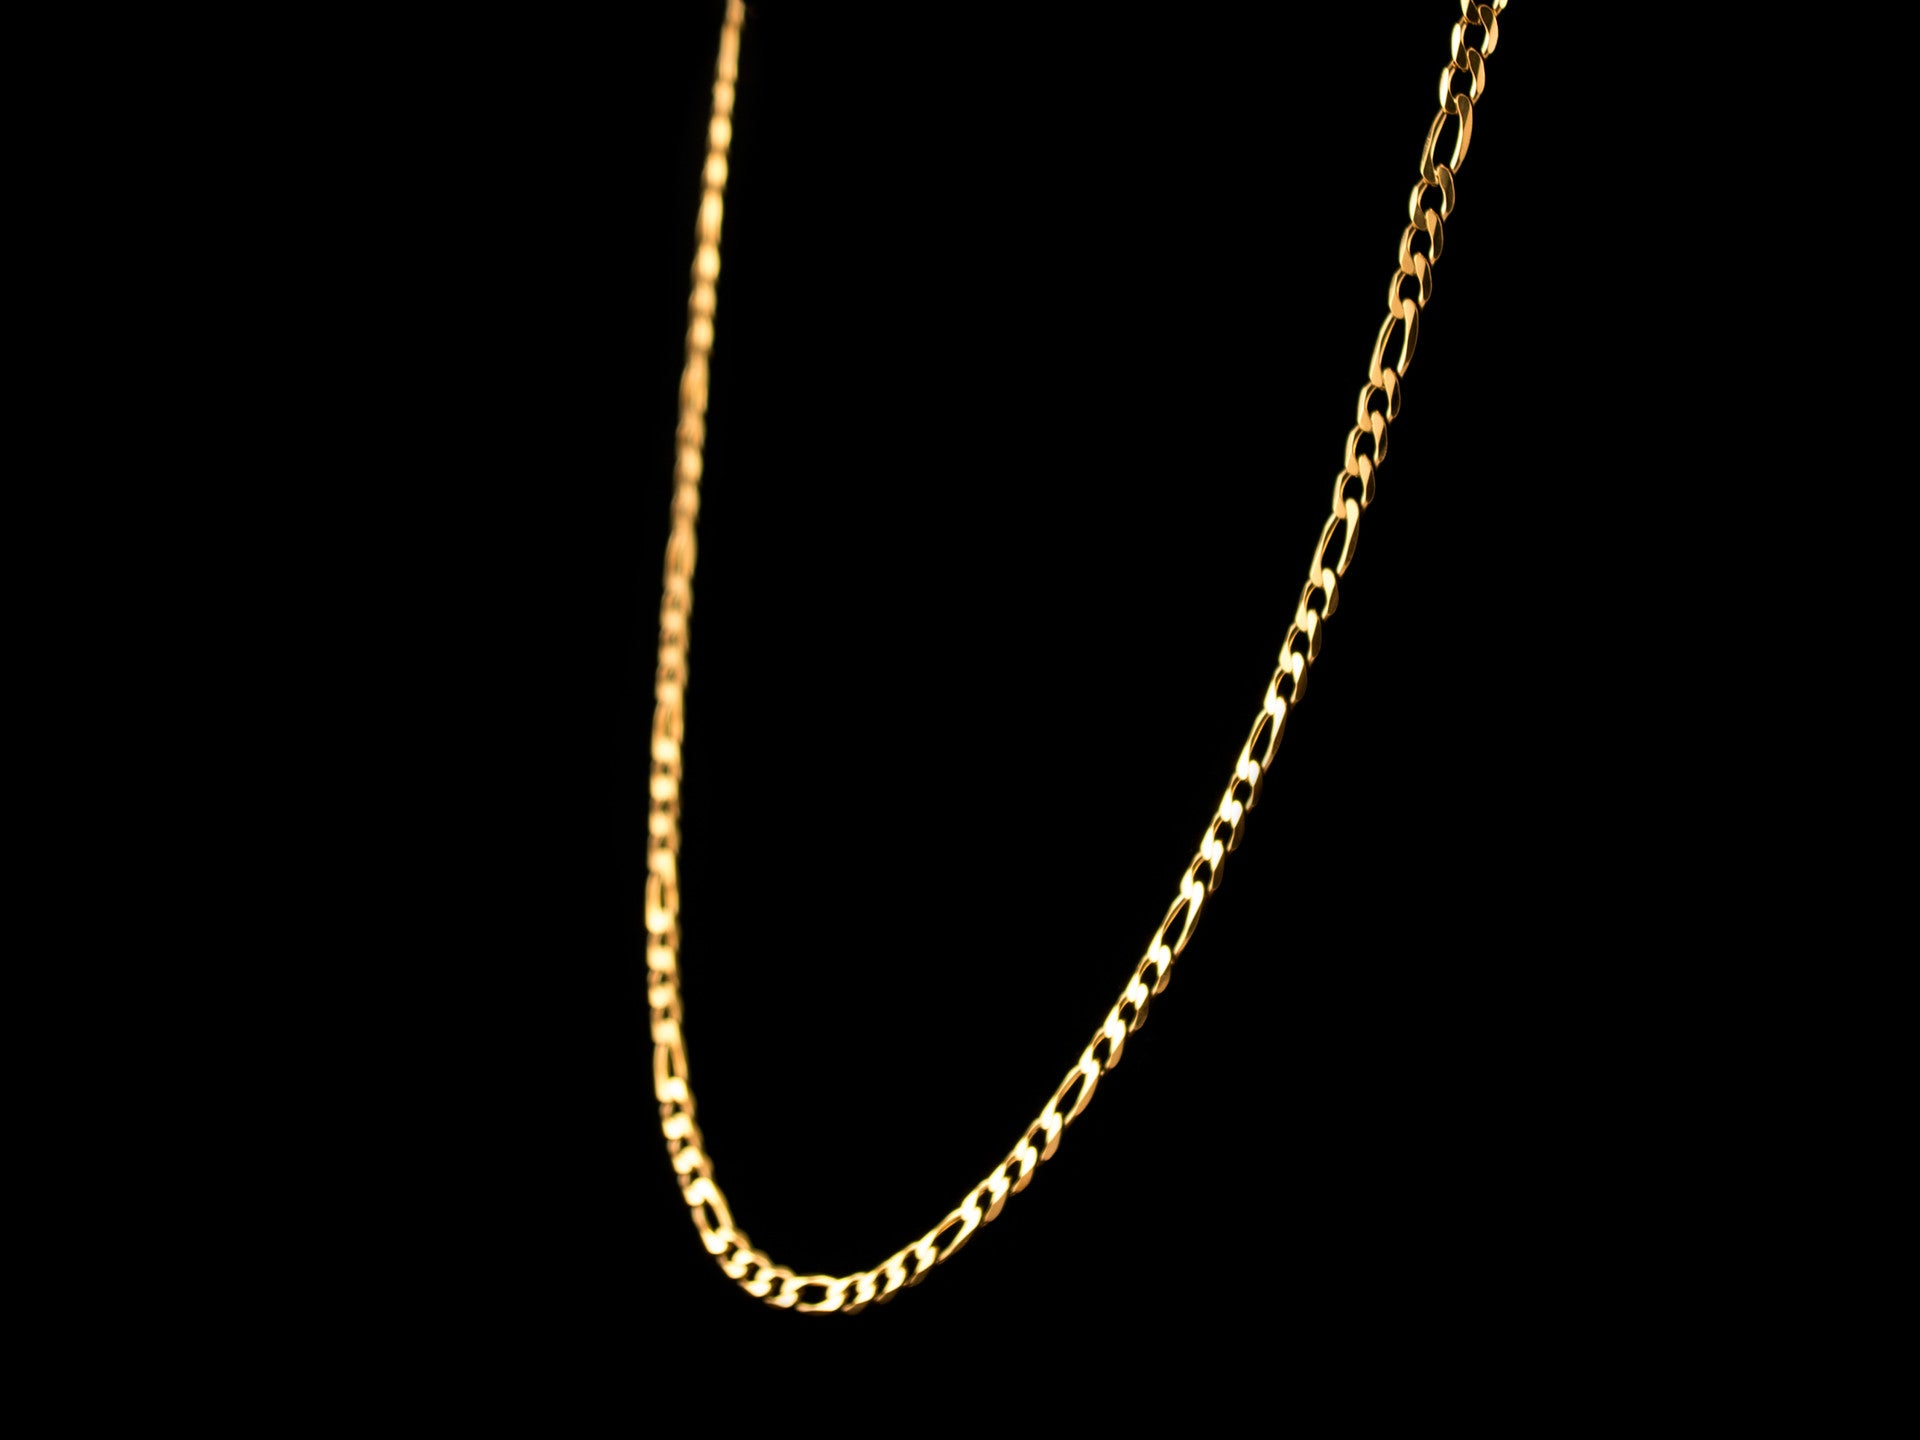 cuban i necklace women gold chain s inch white